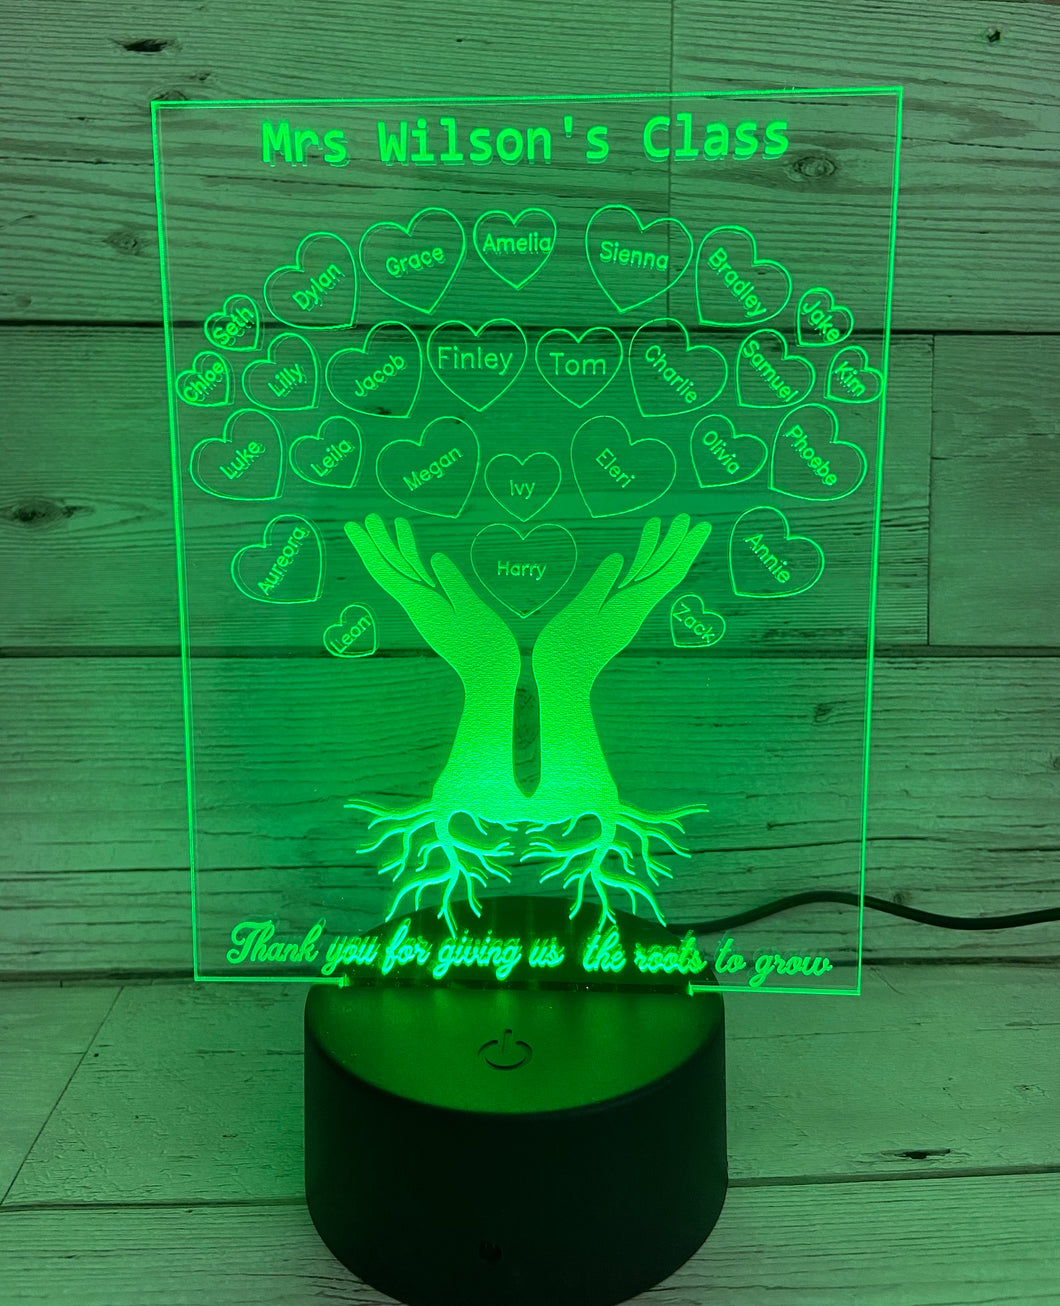 Personalised 3d Led light Teacher class gift-hands with roots - Laser LLama Designs Ltd